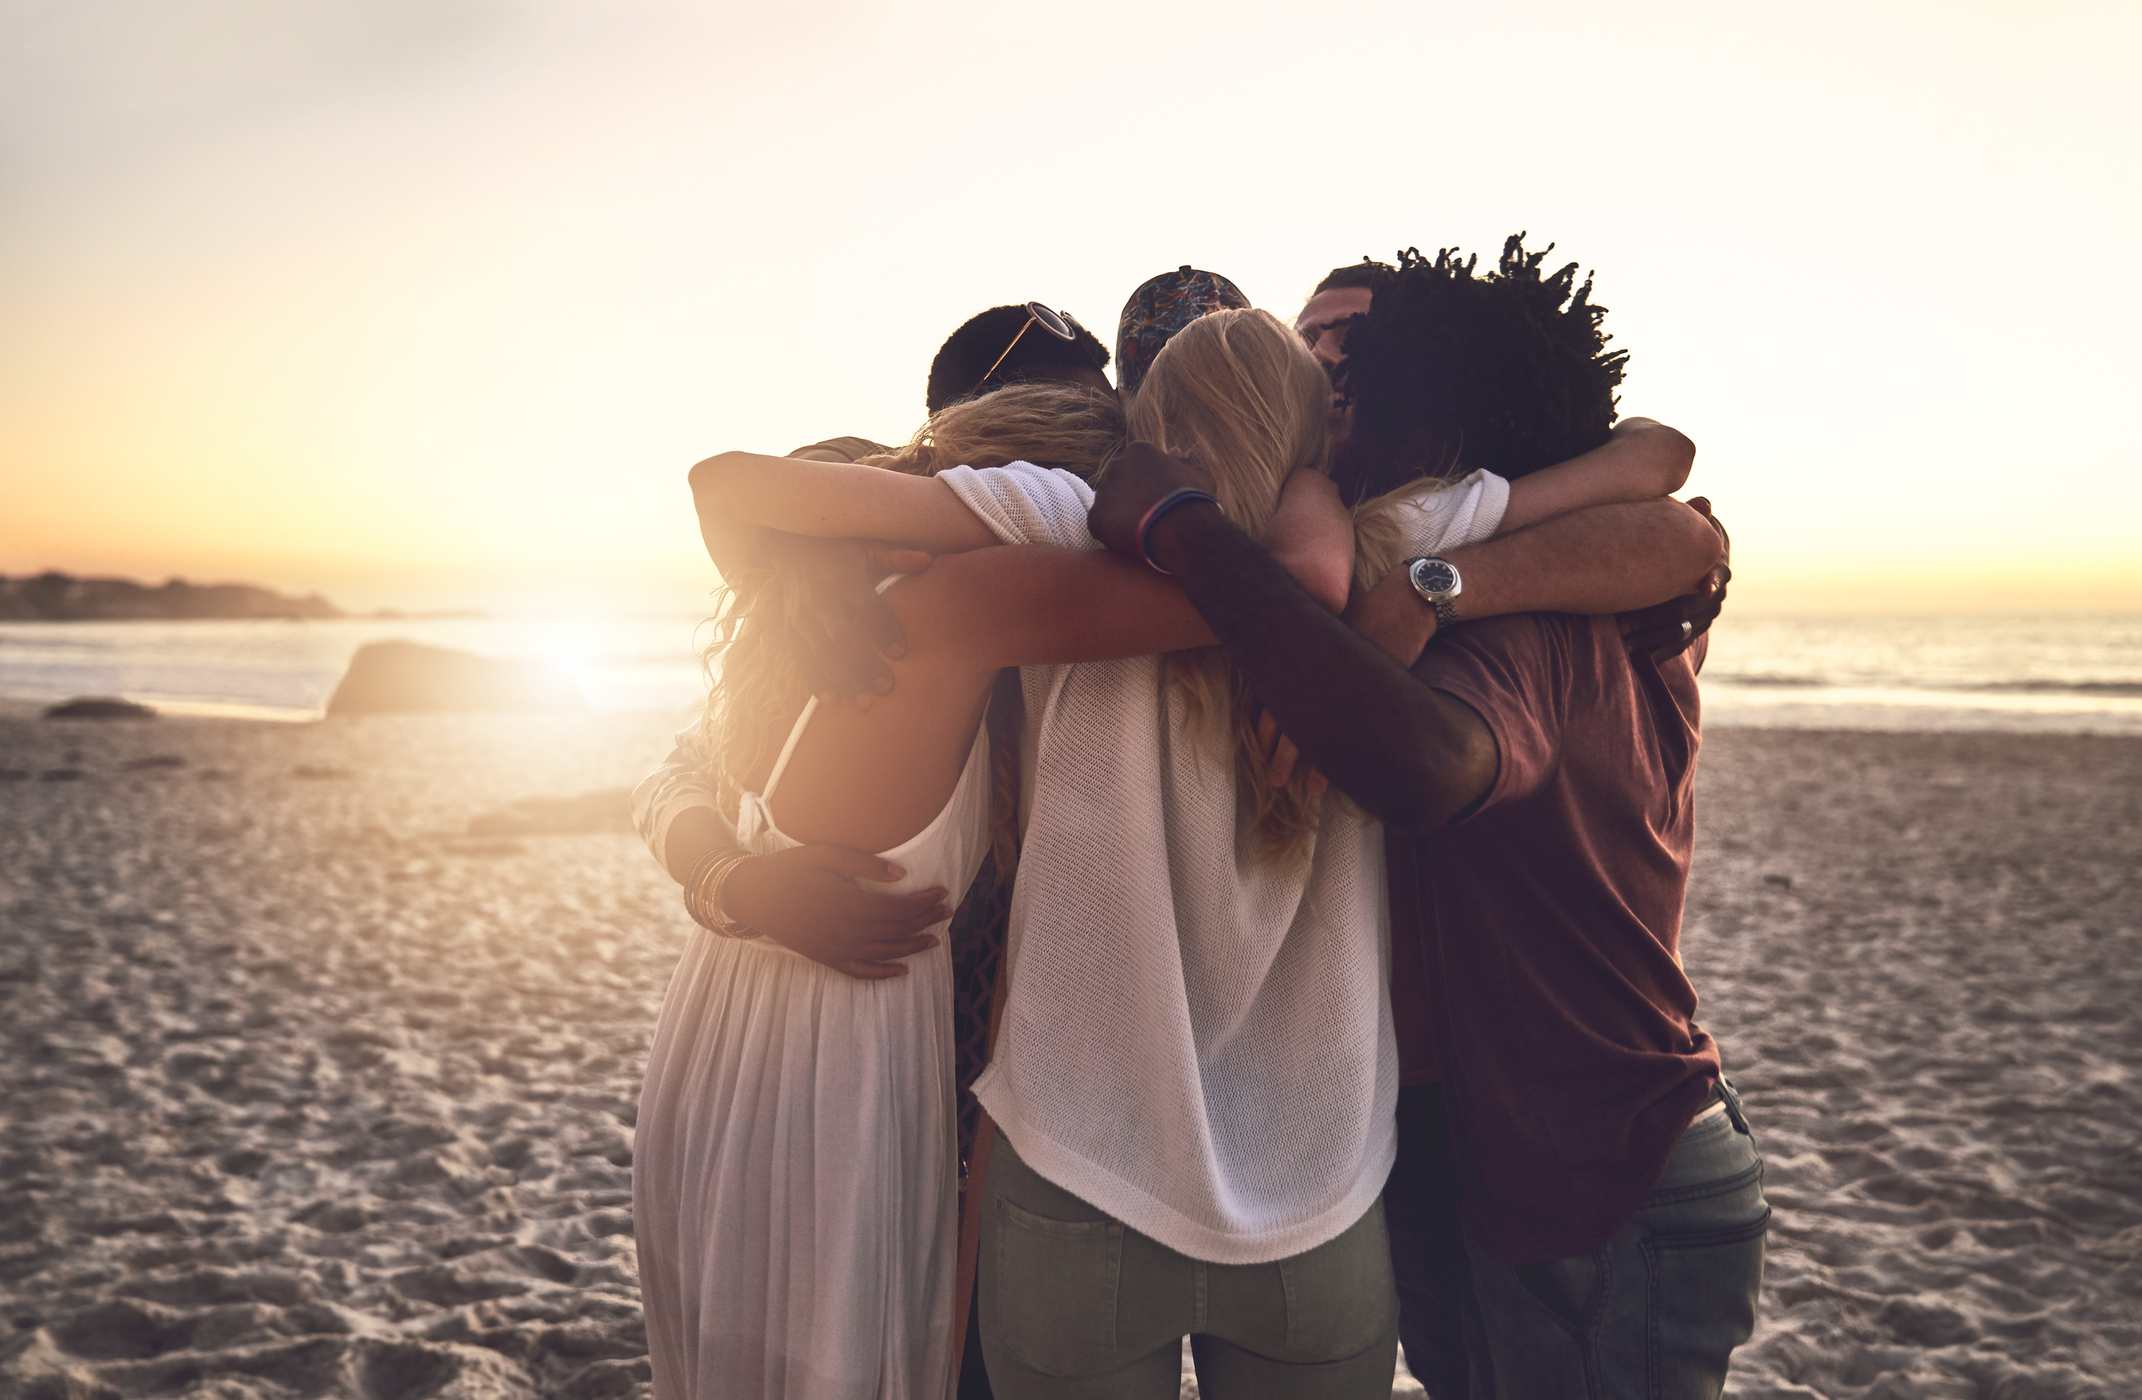 A group of friends hugging on the beach.